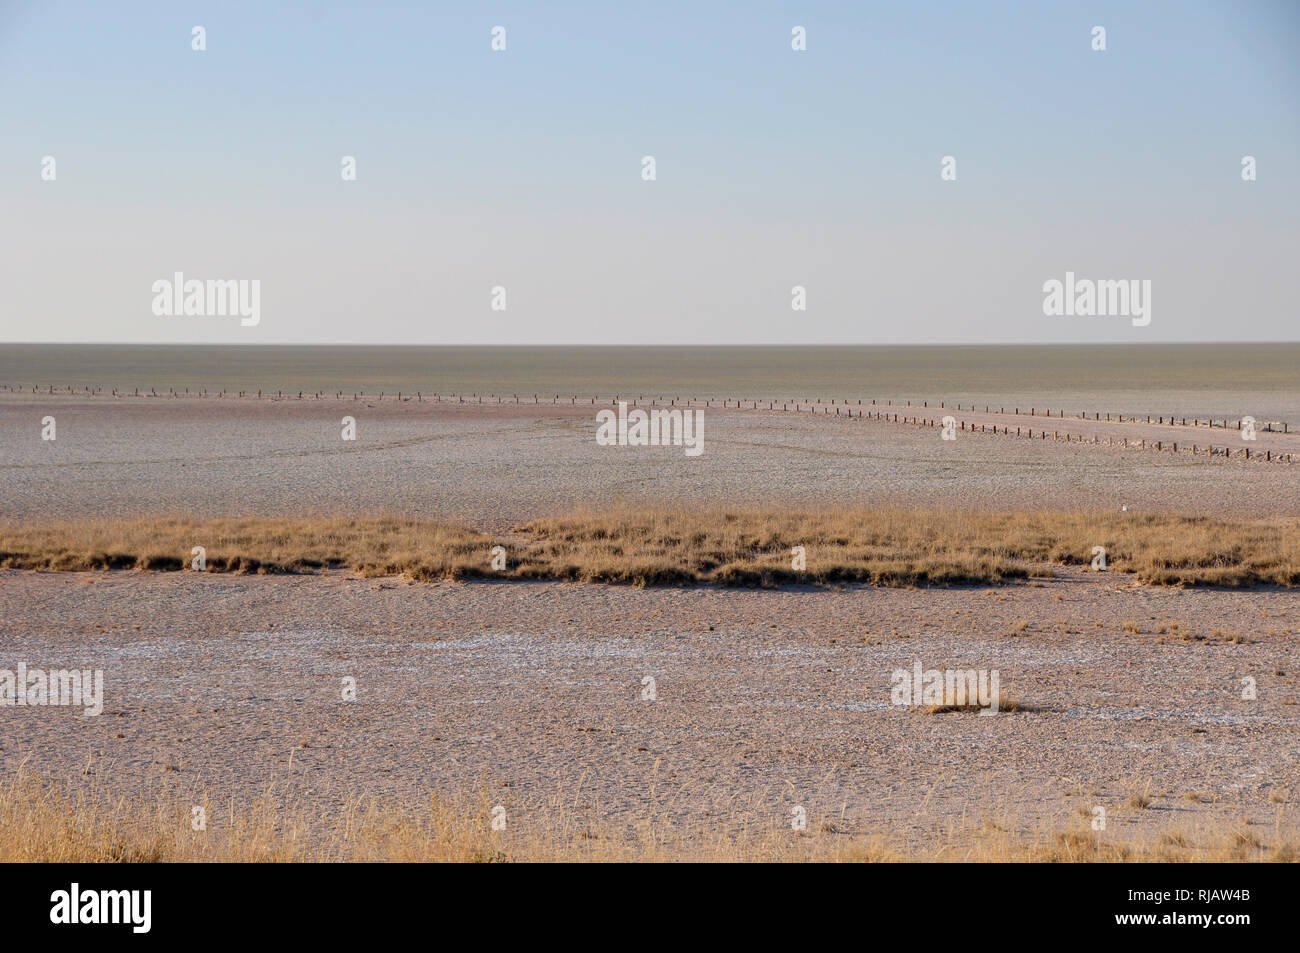 At the end of civilised world on the boarder of the Etosha Salt Pans - Stock Image